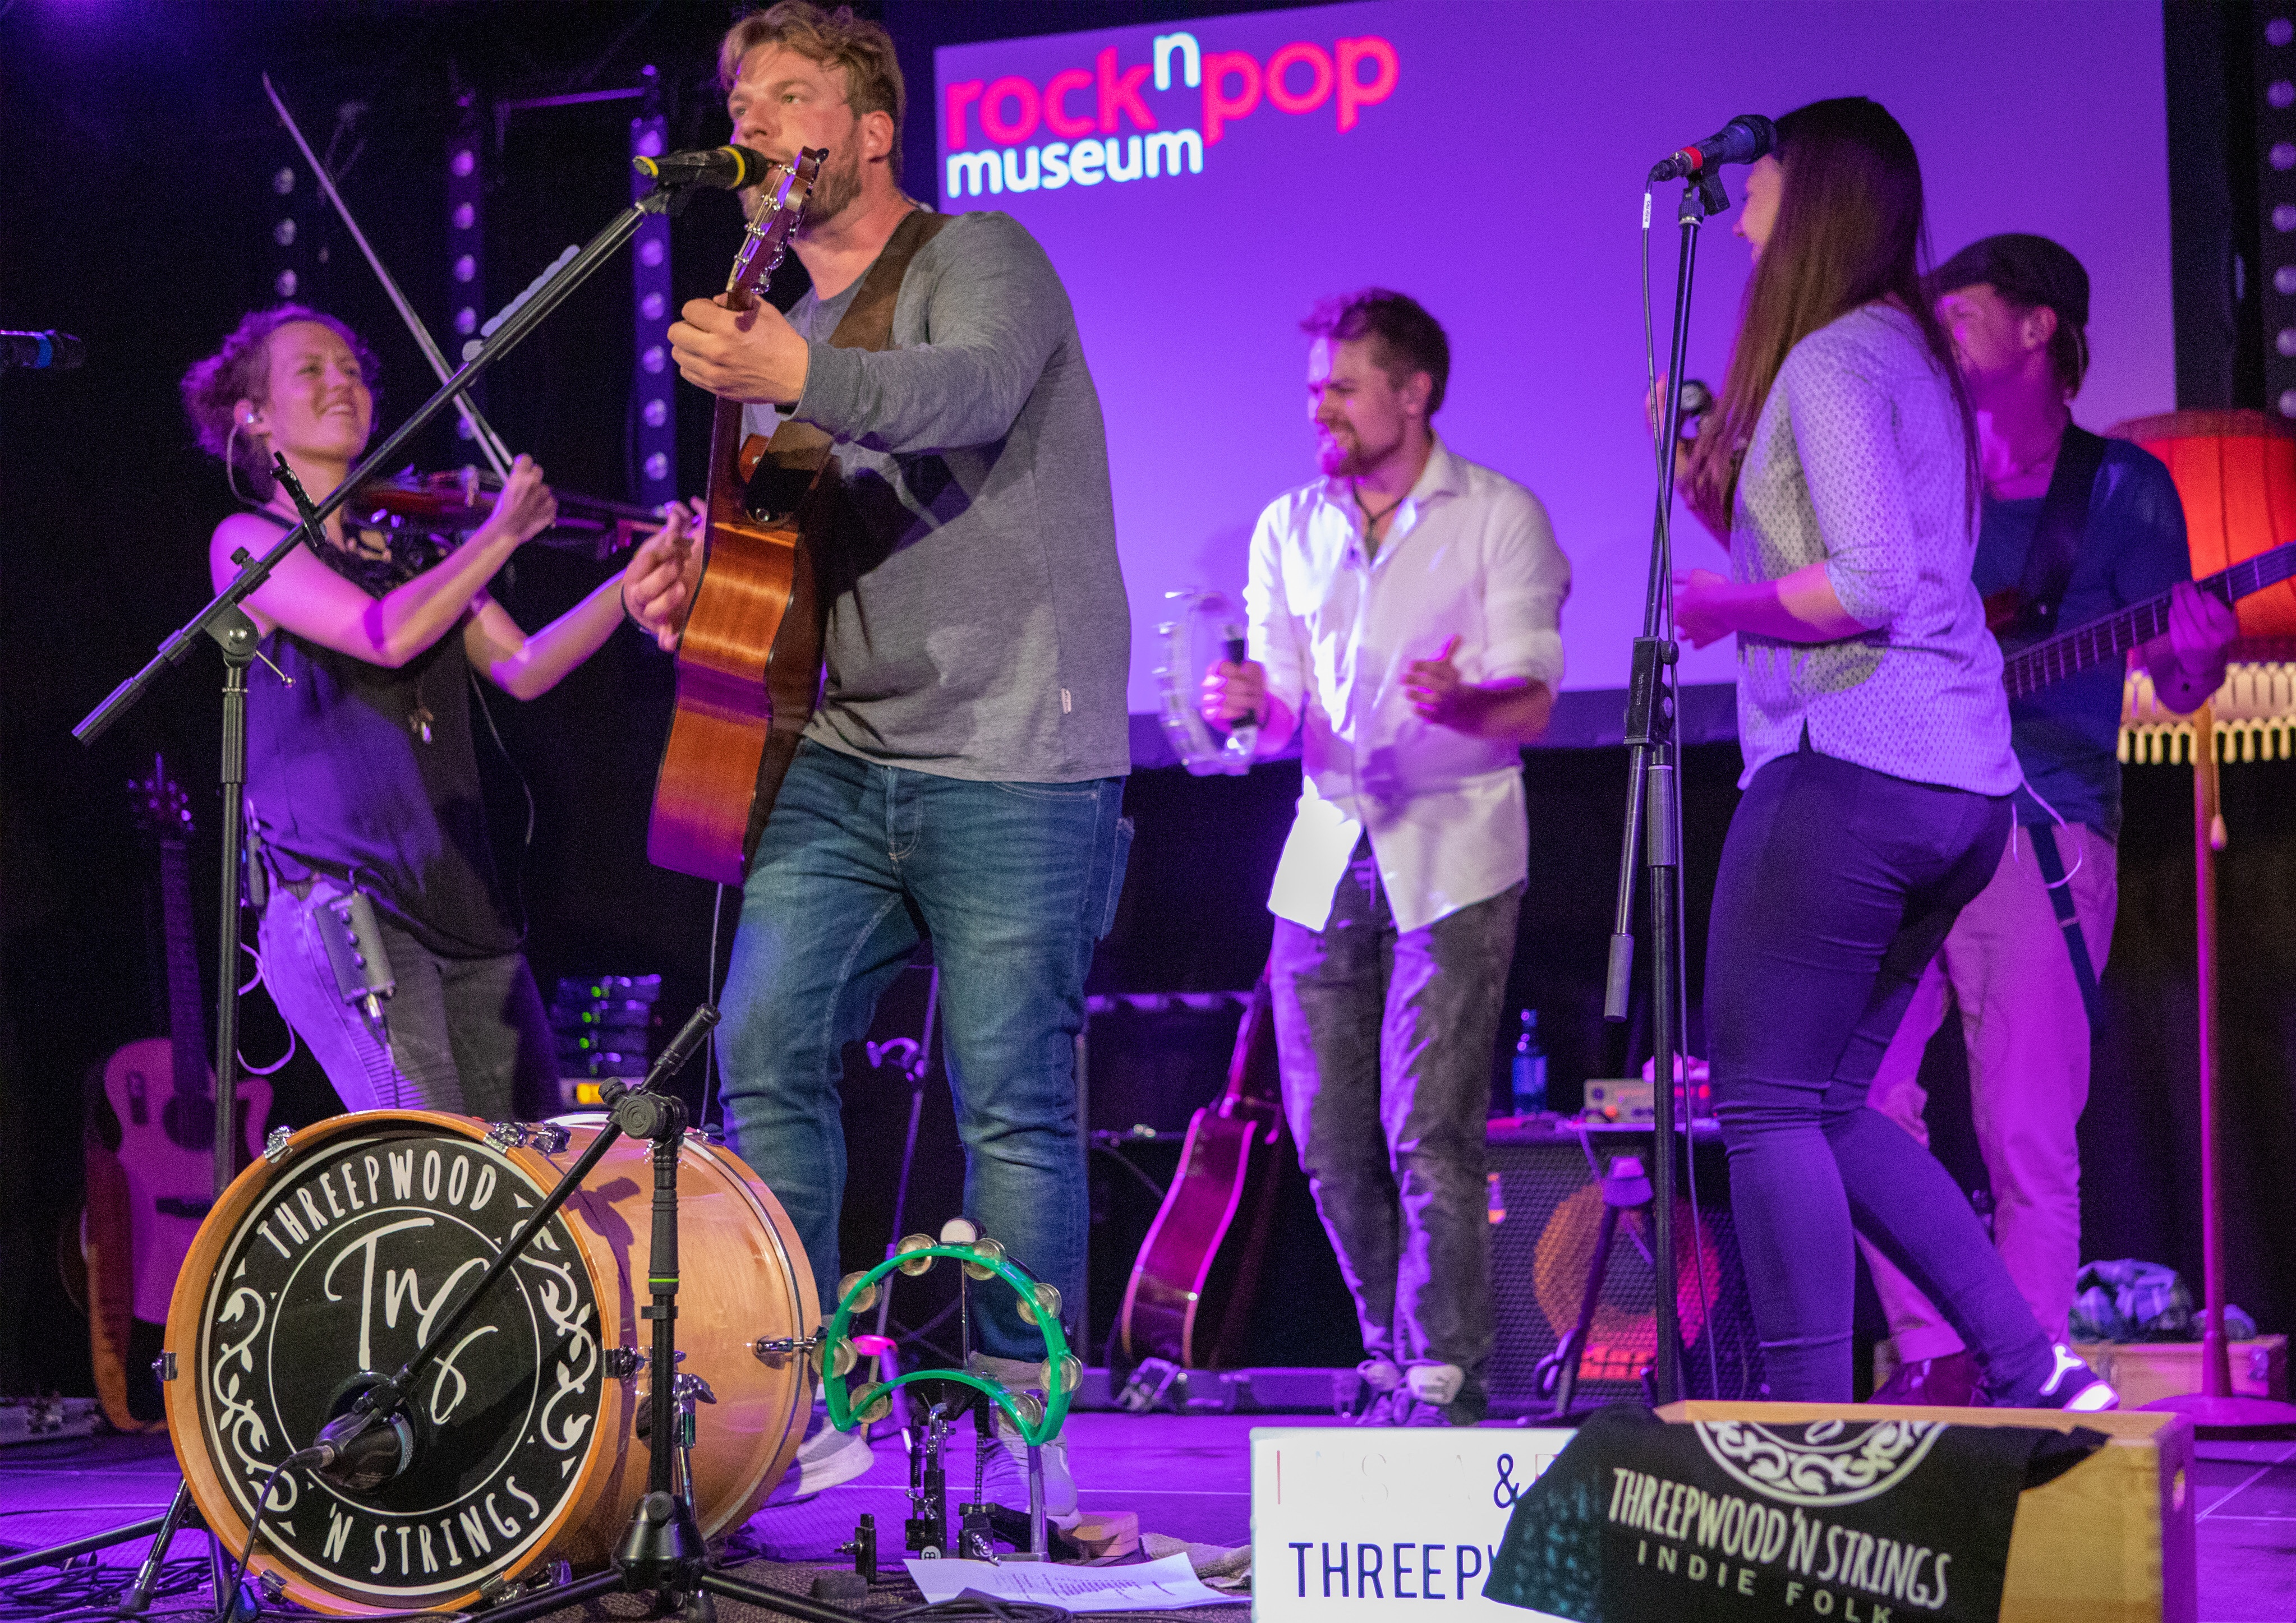 Threepwood N Strings im rock'n'popmuseum Gronau 2019